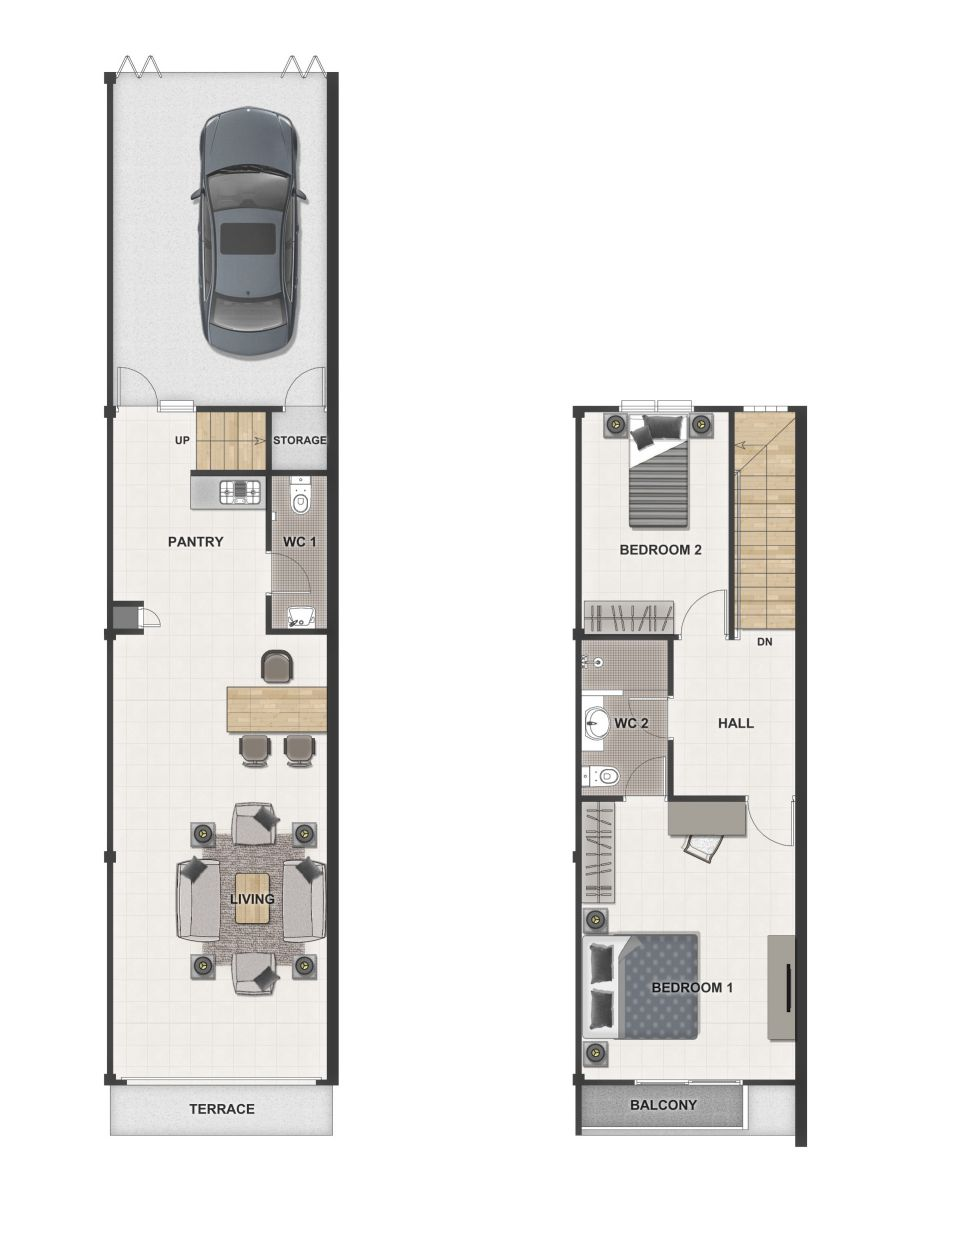 Paragon Wiangsa Floor Plan